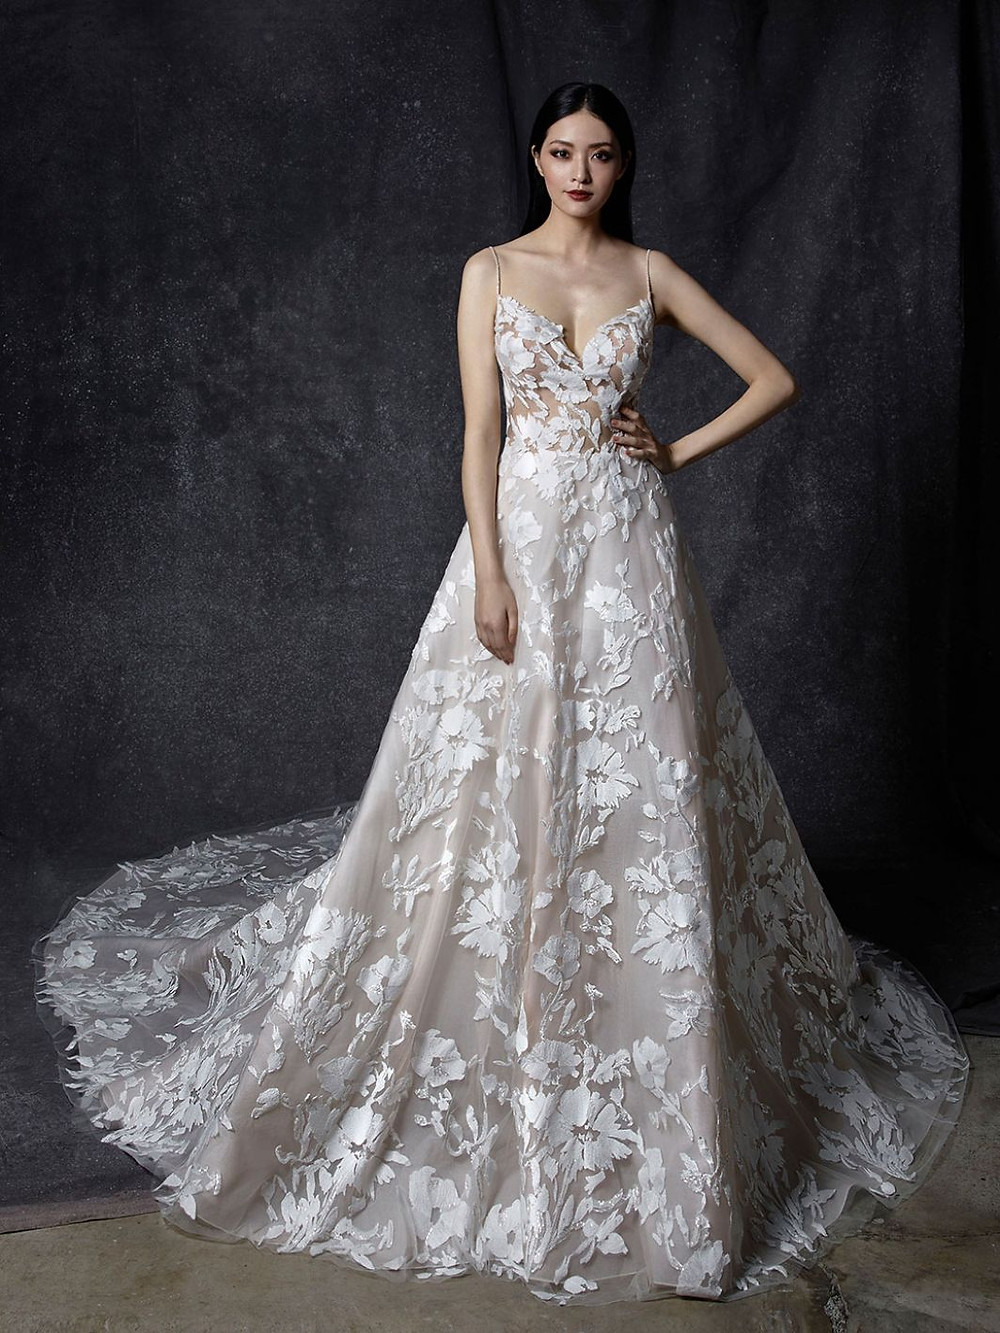 An Enzoani ball gown wedding dress with thin straps and floral print